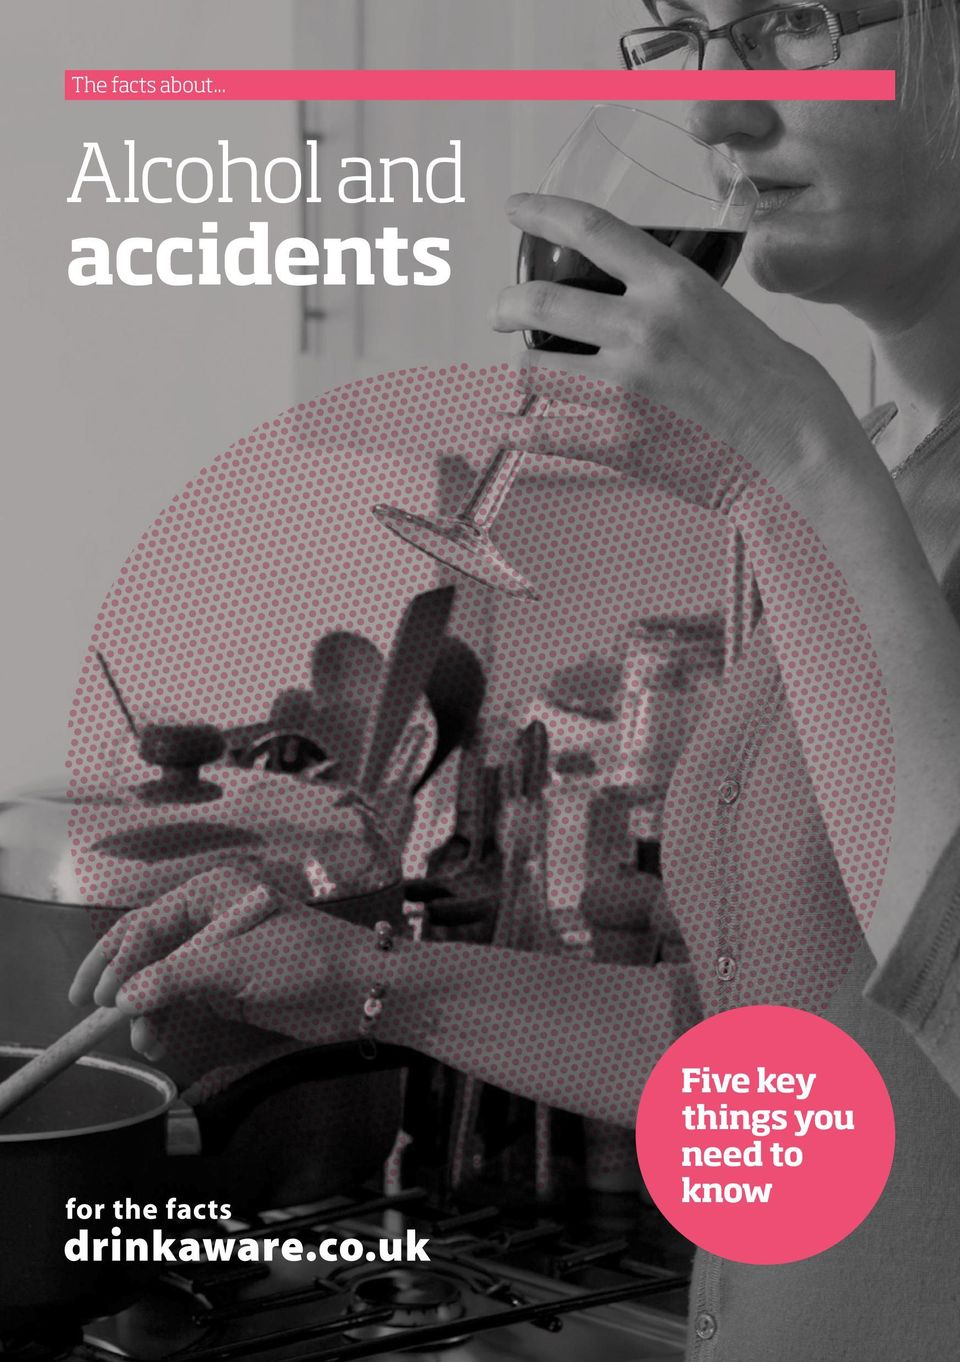 accidents Five key